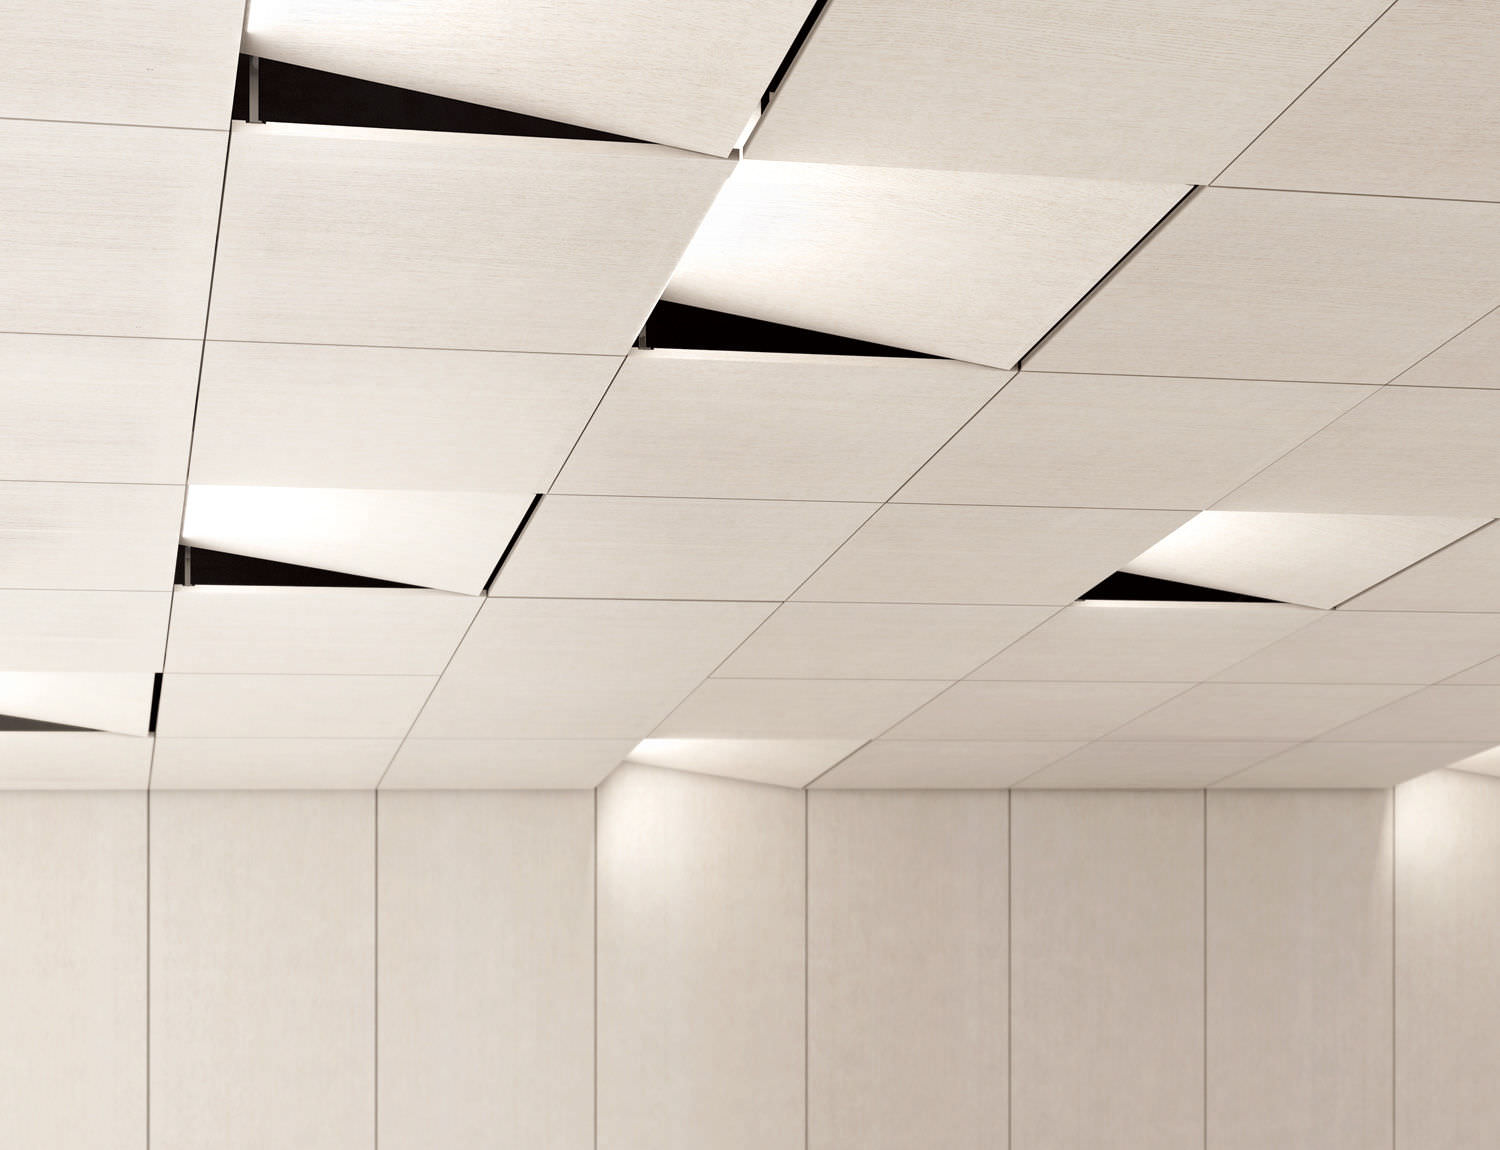 Wooden suspended ceiling tile acoustic tectonique 55 wooden suspended ceiling tile acoustic tectonique 55 glissement dailygadgetfo Images